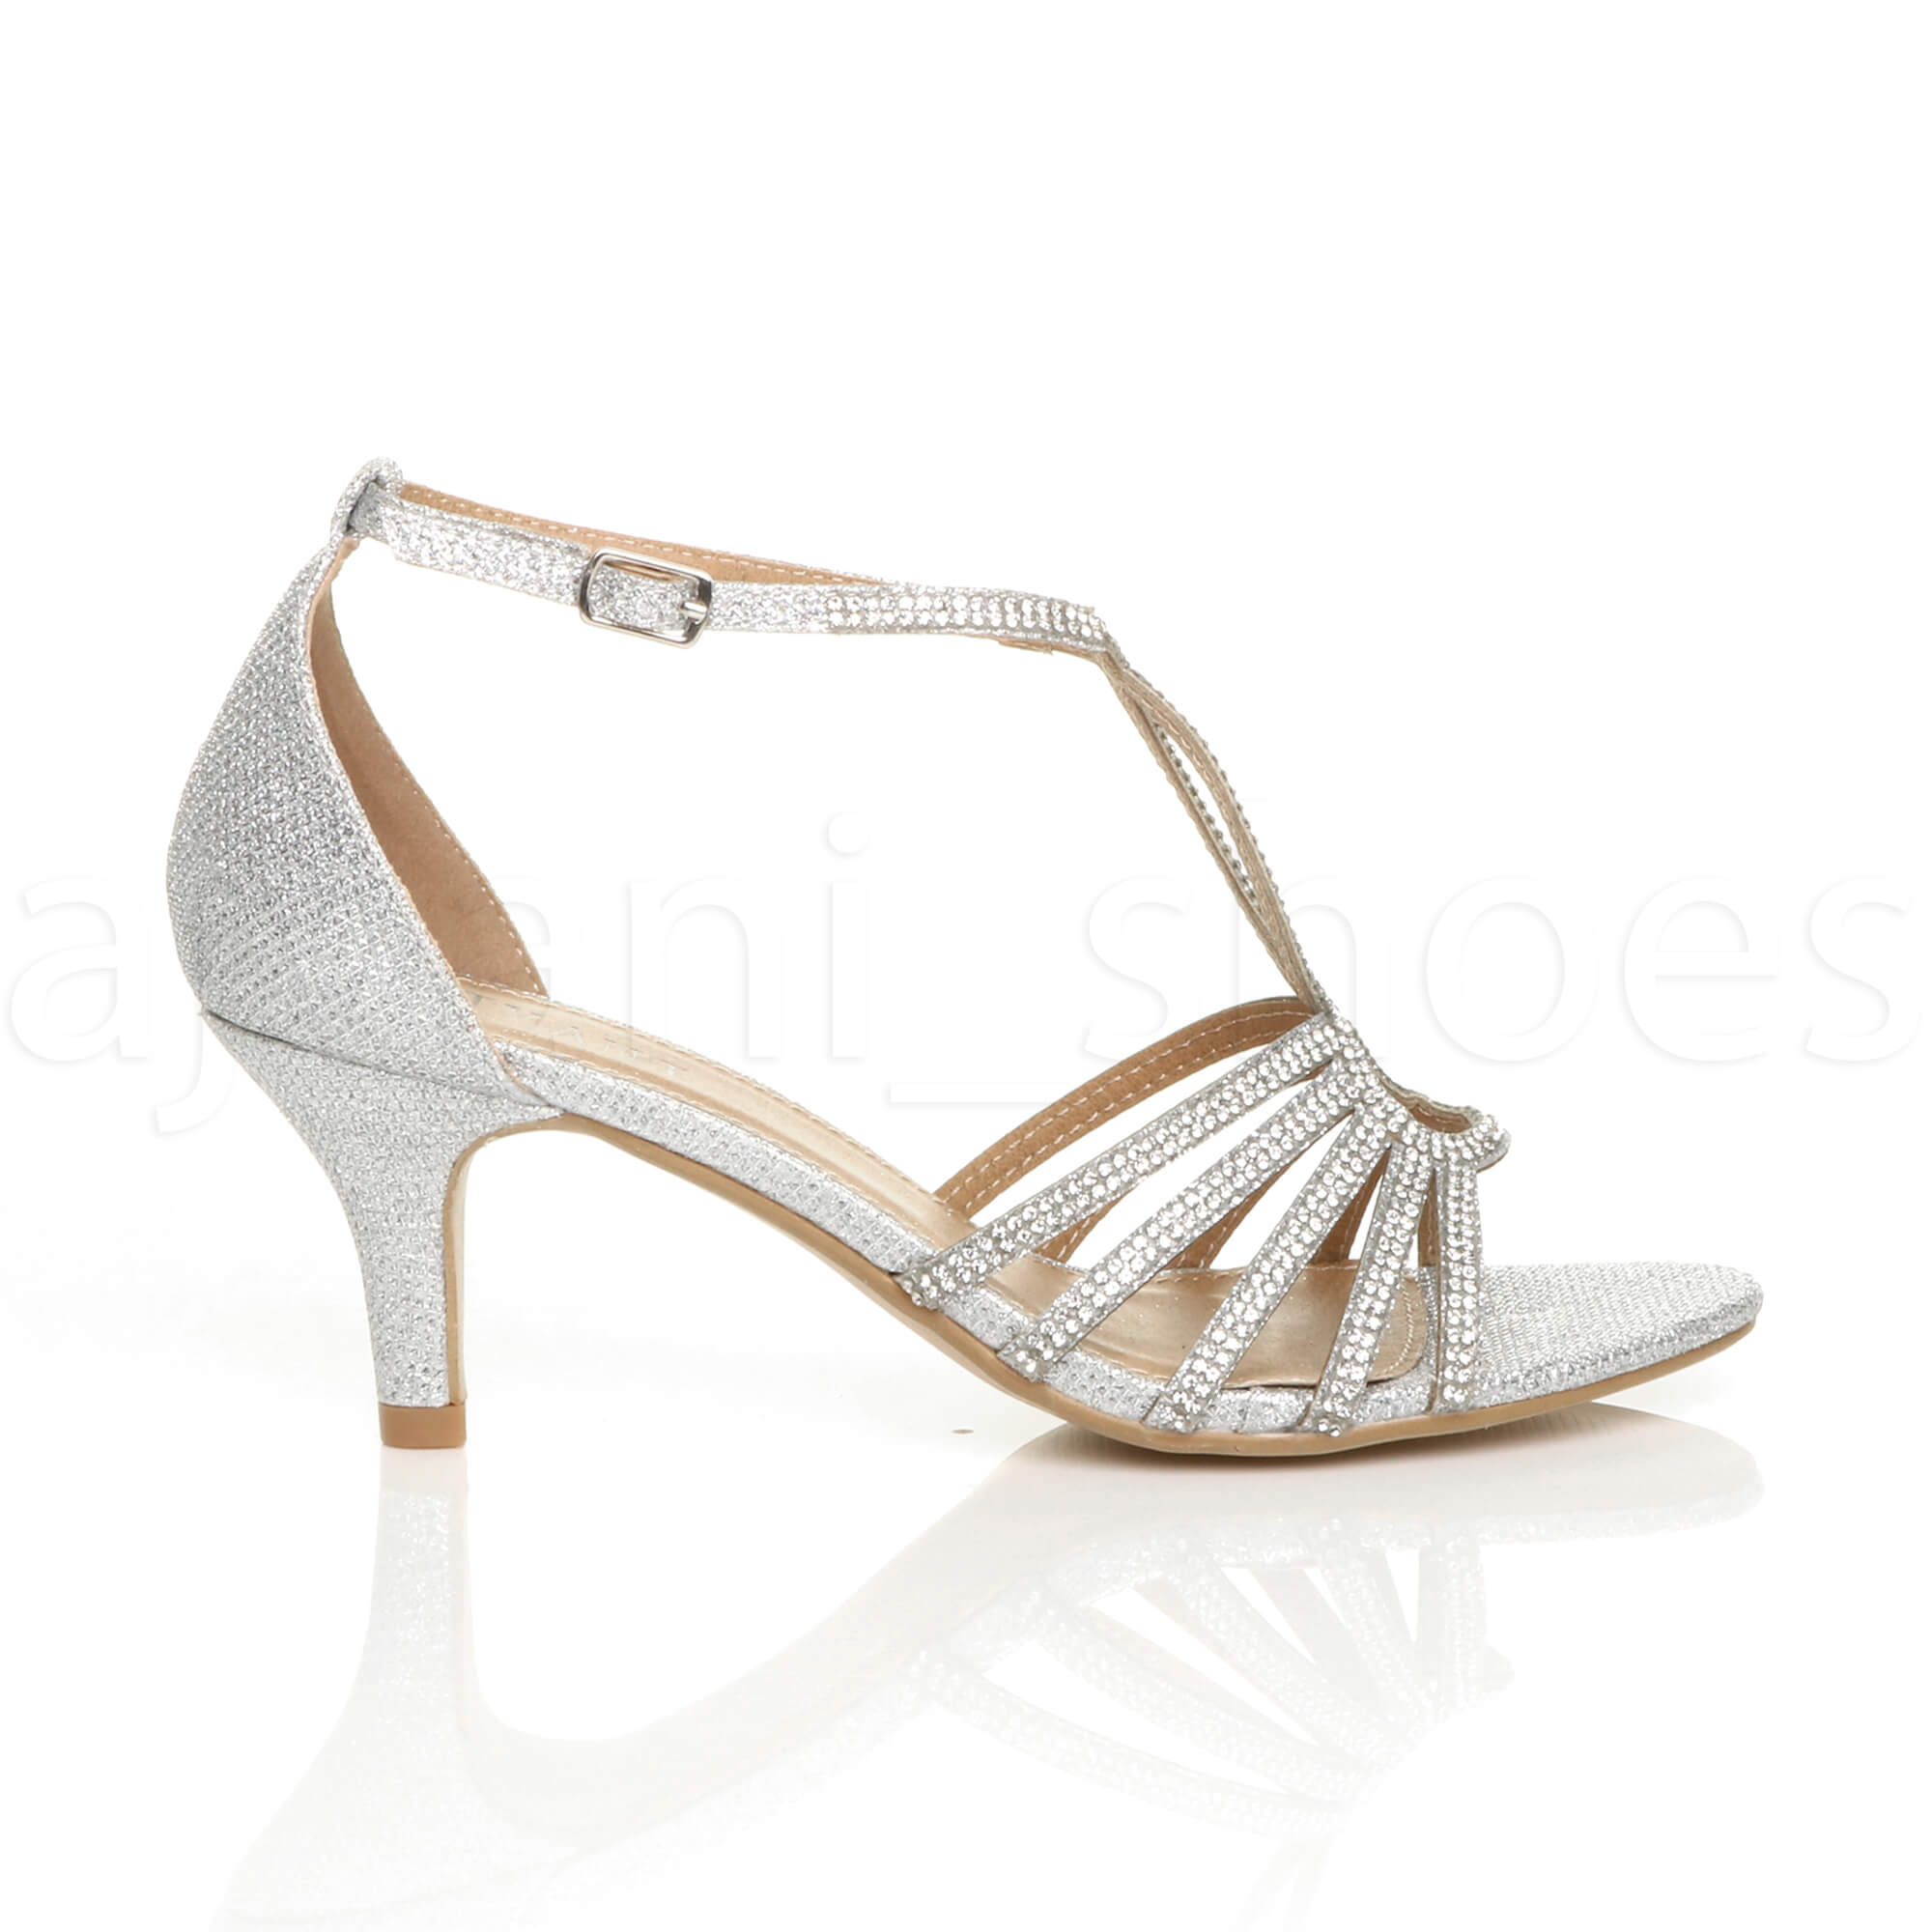 WOMENS-LADIES-MID-HEEL-STRAPPY-DIAMANTE-WEDDING-EVENING-T-BAR-SANDALS-SHOES-SIZE thumbnail 21